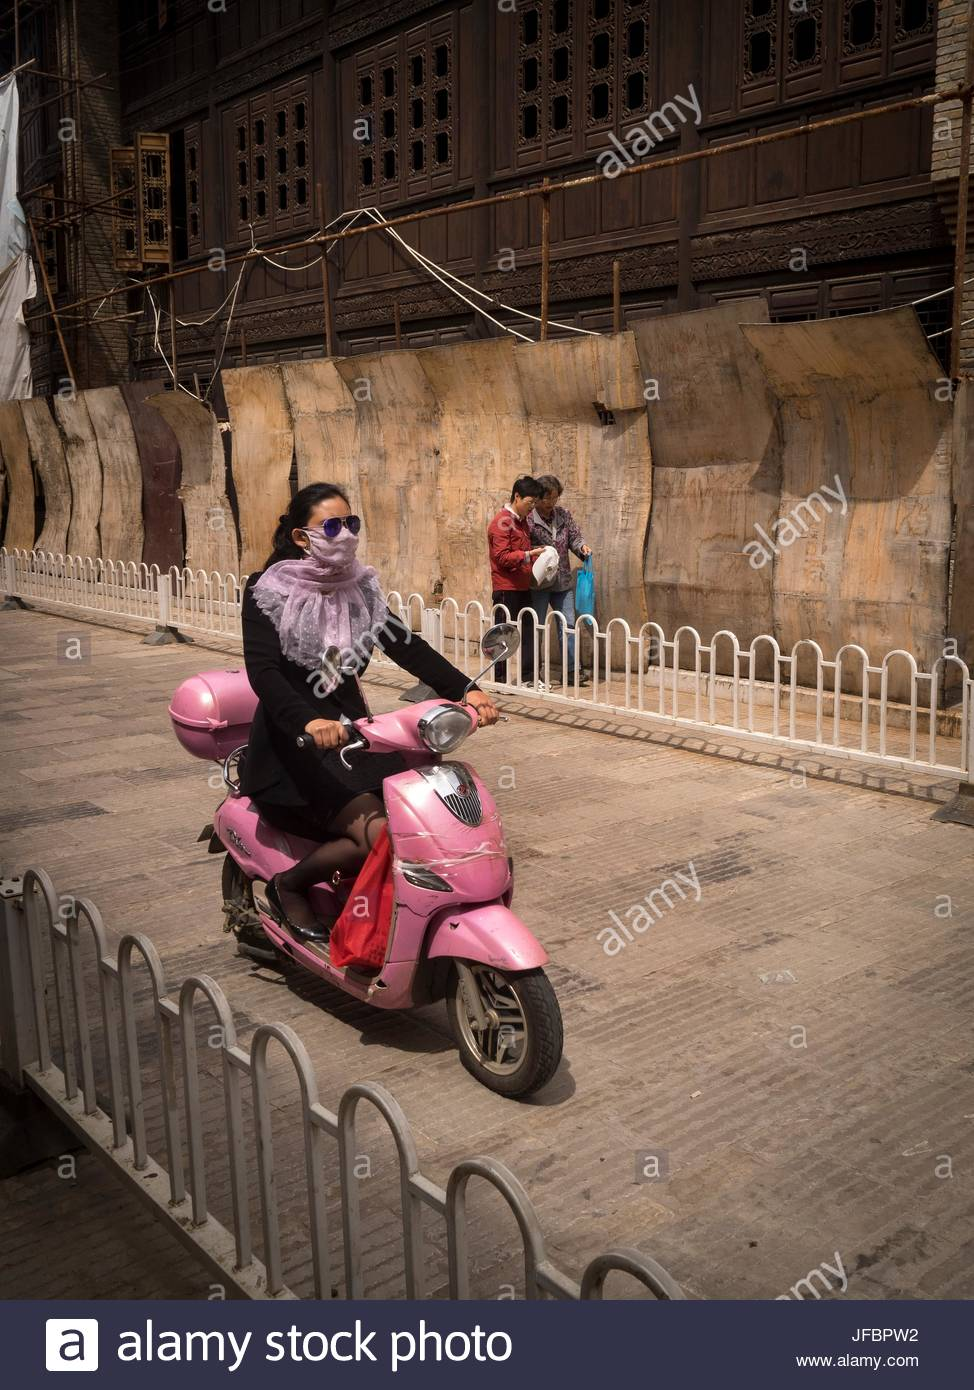 A woman wearing a face covering to protect against pollution, rides her motor scooter past boarded up buildings - Stock Image